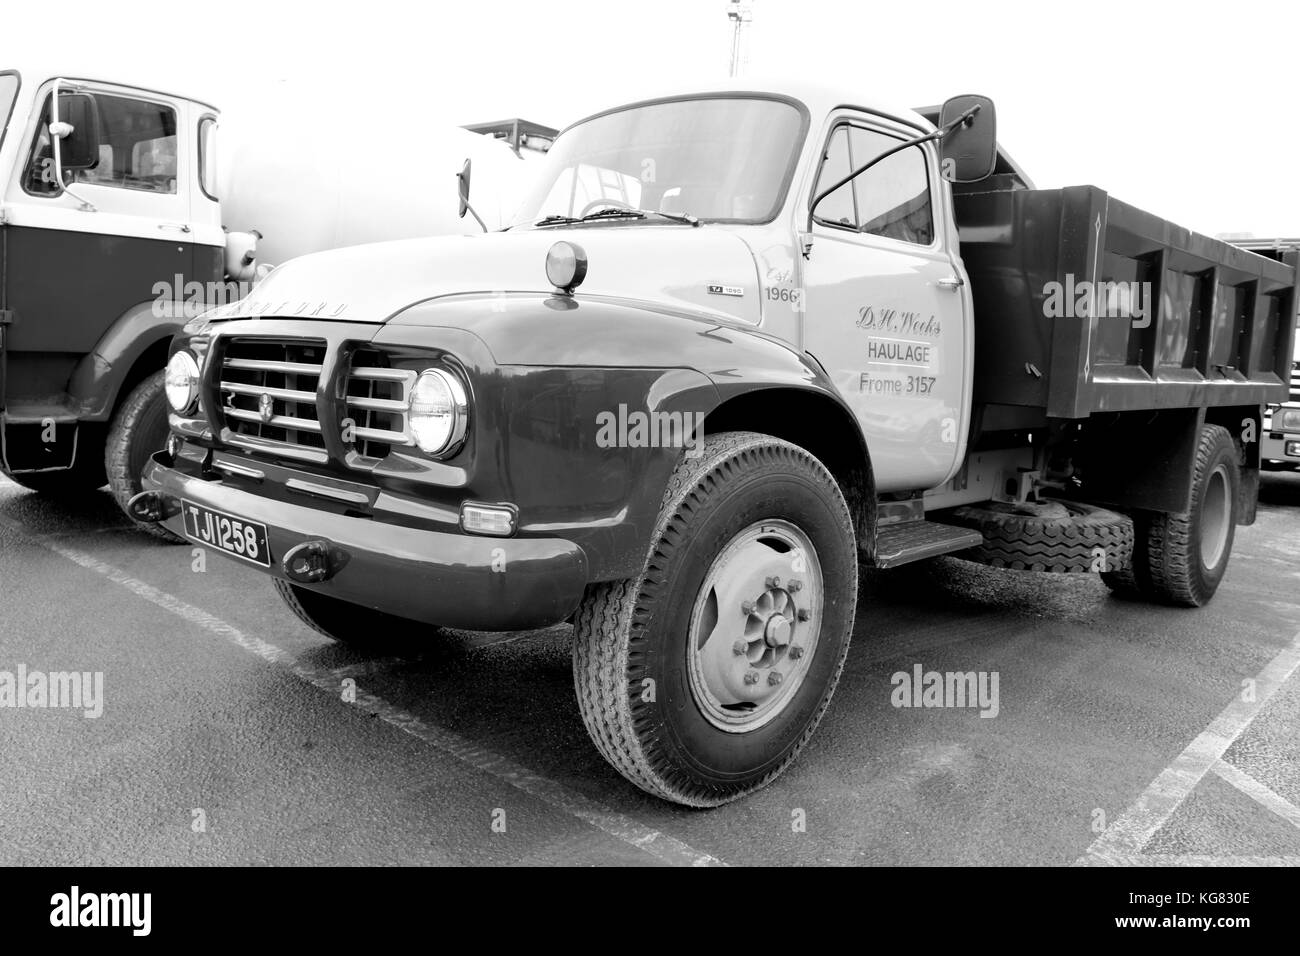 Vauxhall black and white stock photos images alamy for Tj motors new london